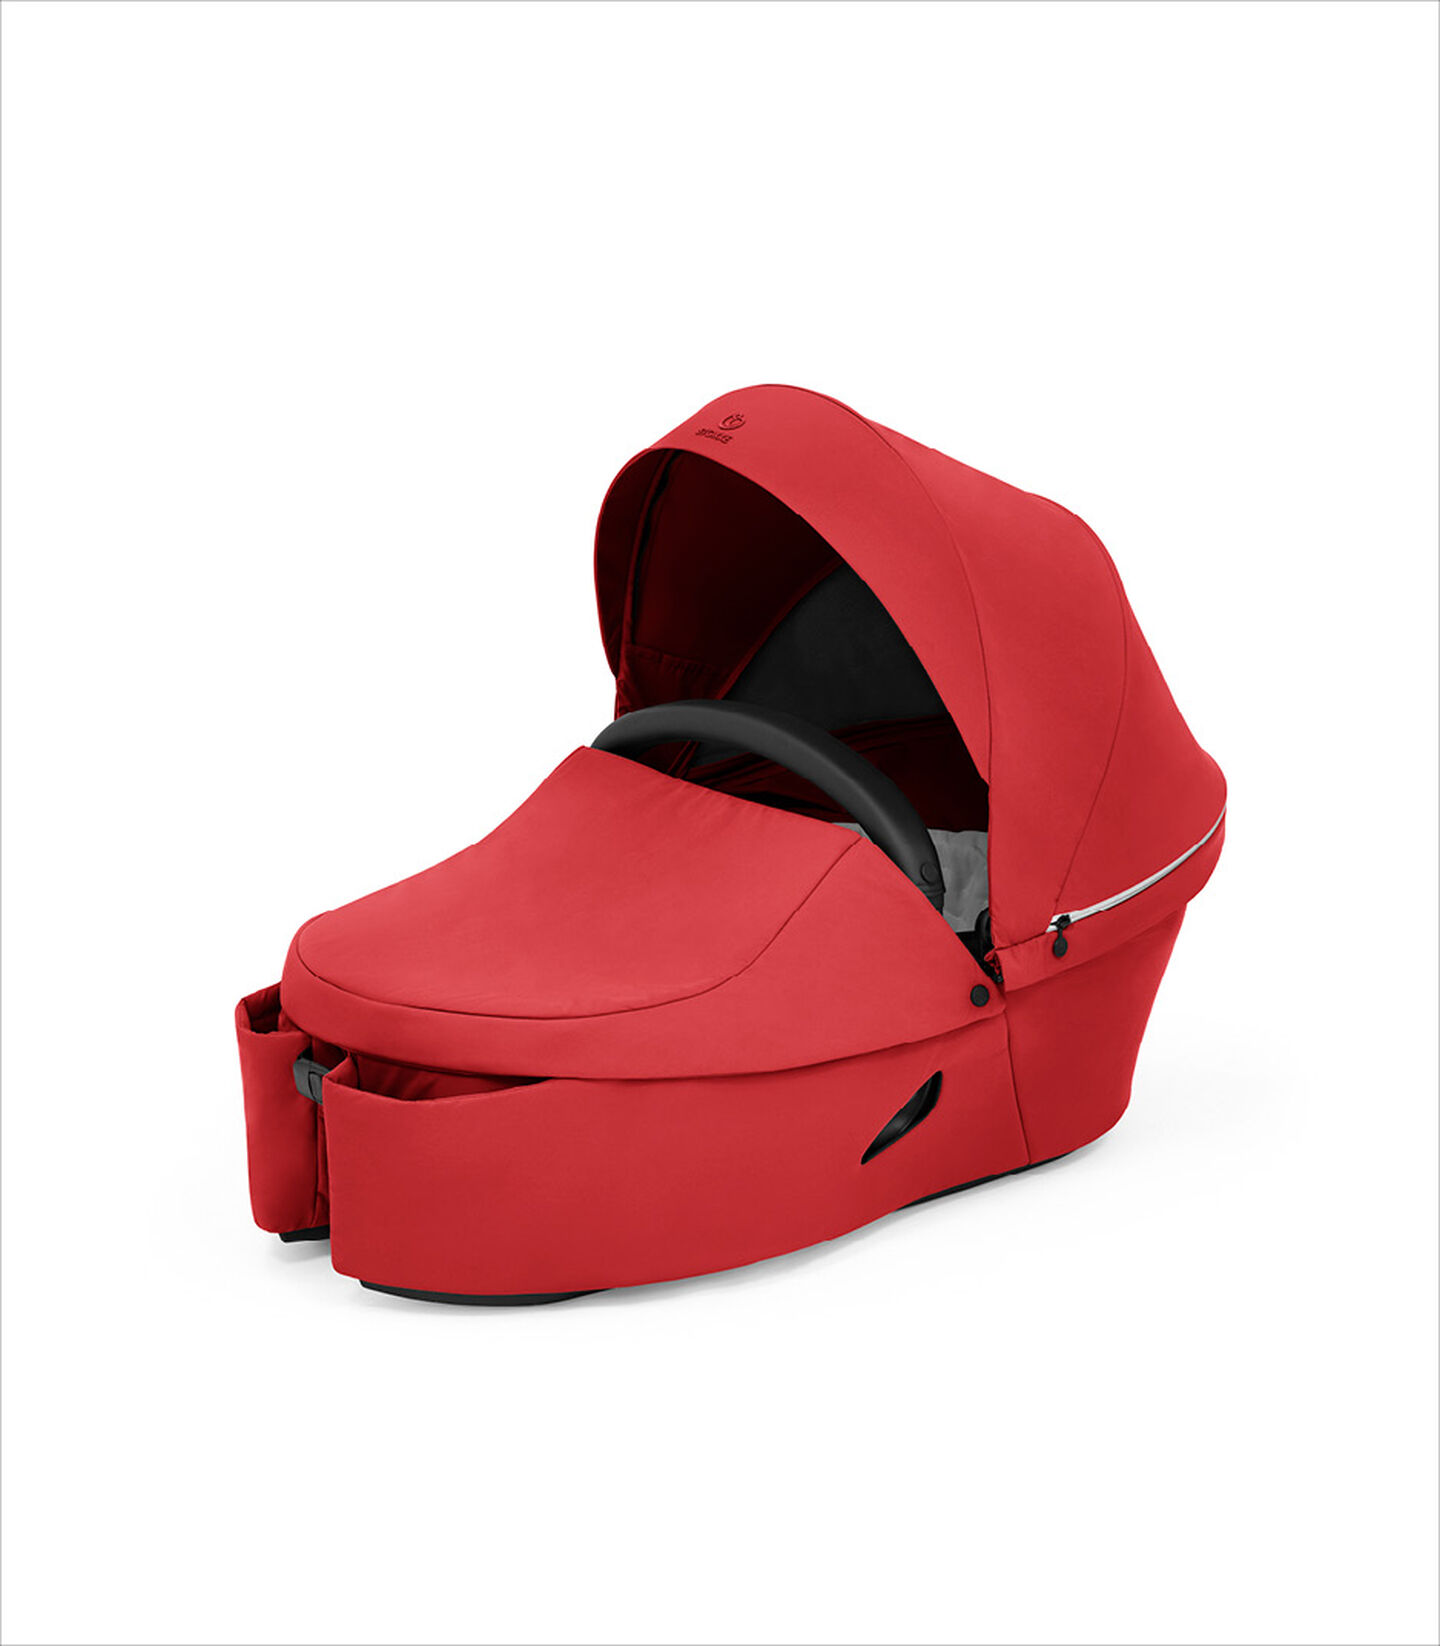 Stokke® Xplory® X Babyschale Ruby Red, Ruby Red, mainview view 6